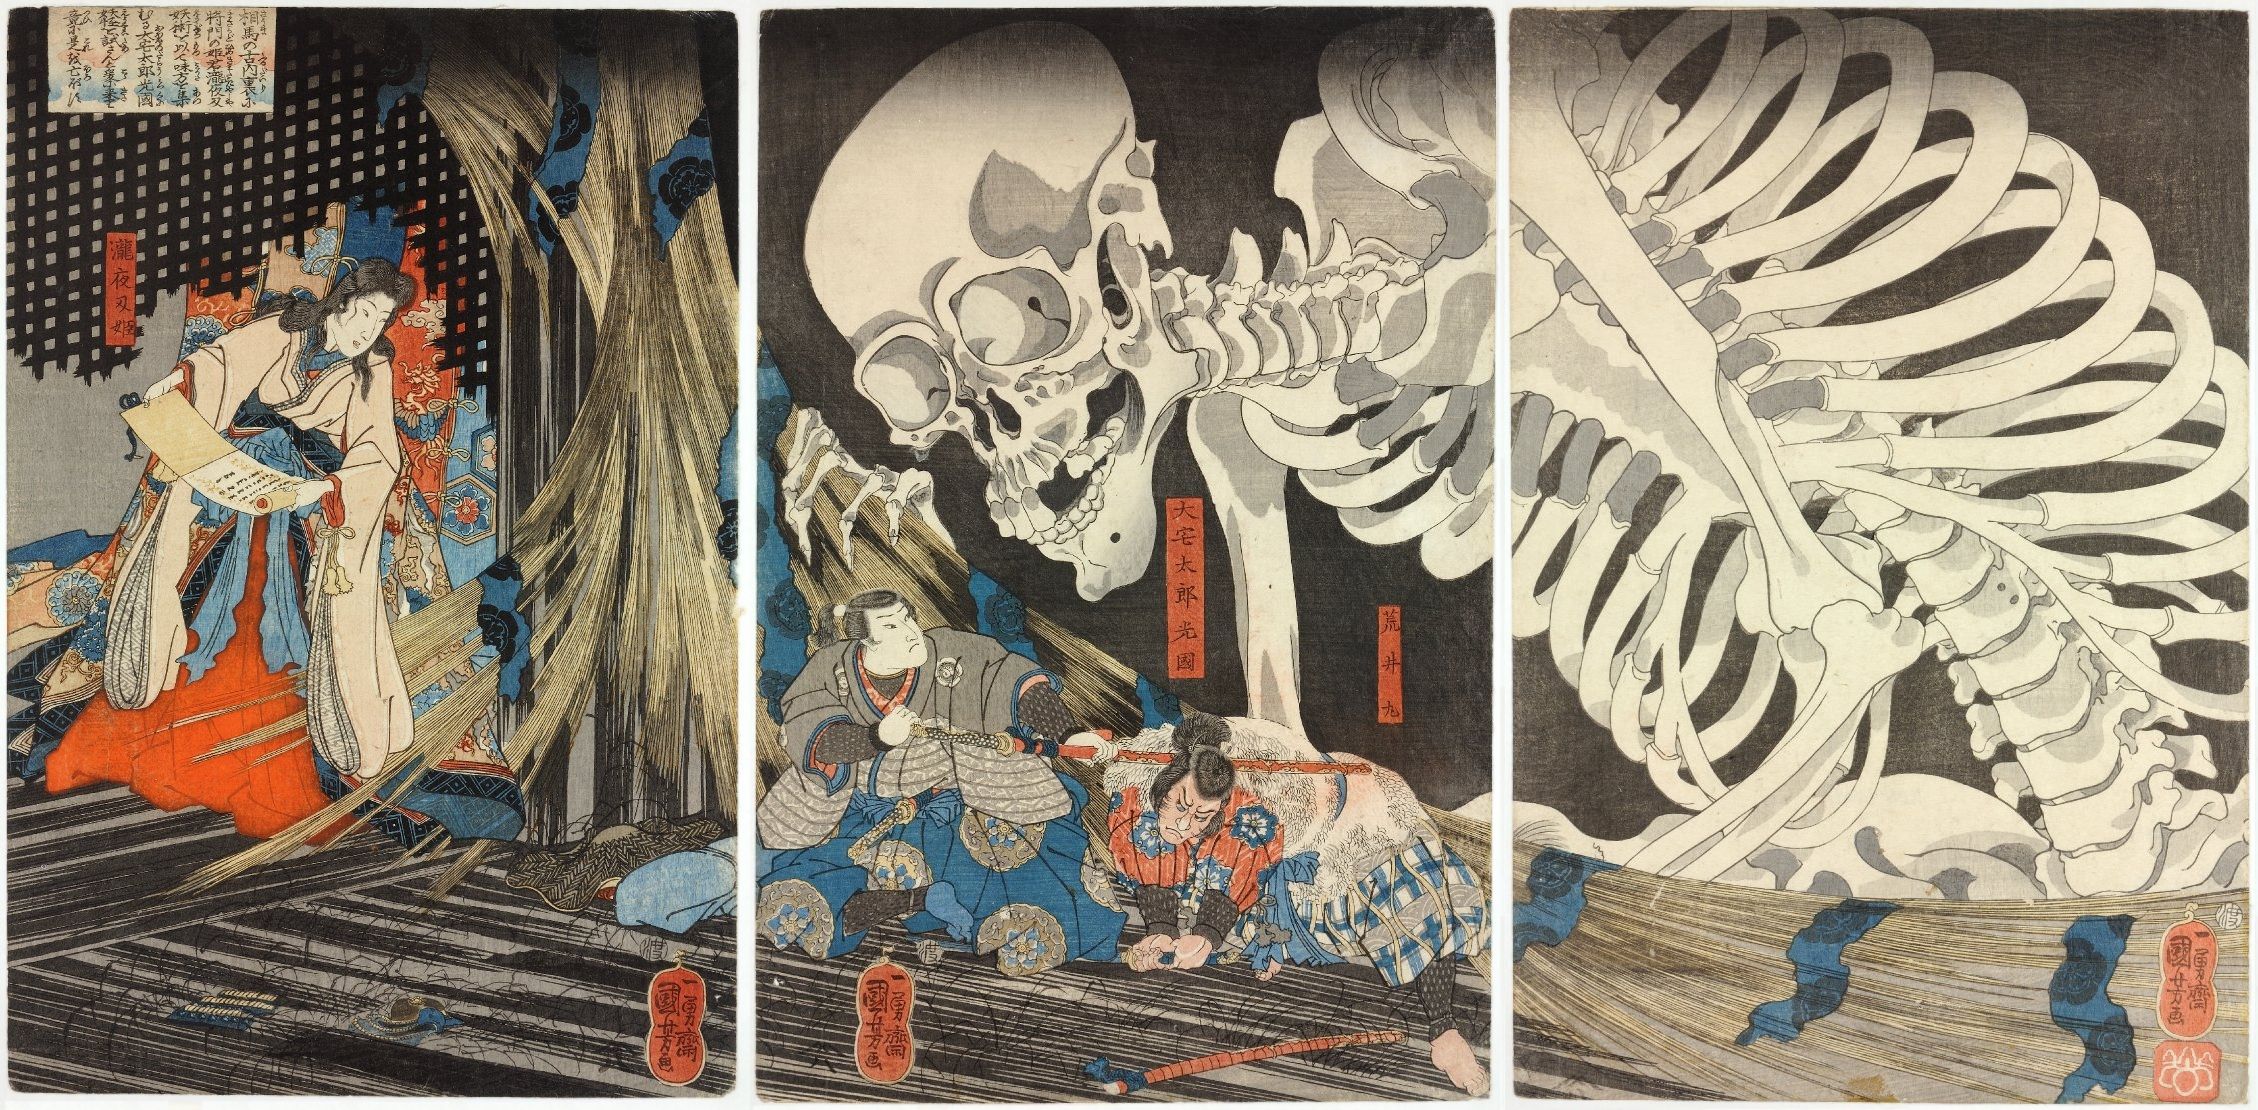 Digital // Utagawa Kuniyoshi's <em>Takiyasha the Witch and the Skeleton Spectre</em> (StoryMapJS)